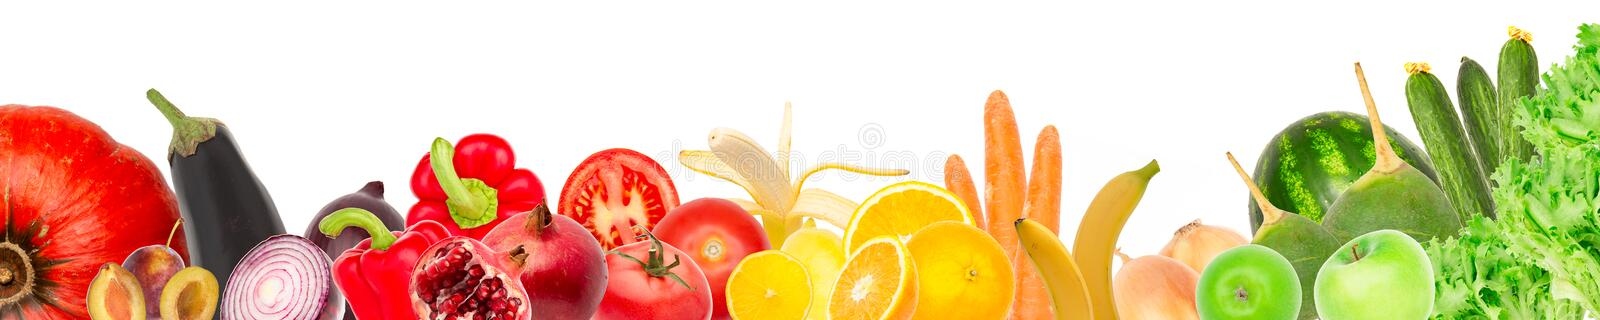 Wide collage of fresh fruits and vegetables for layout isolated on white background. Copy space. Wide collage of fresh fruits and vegetables for layout isolated vector illustration